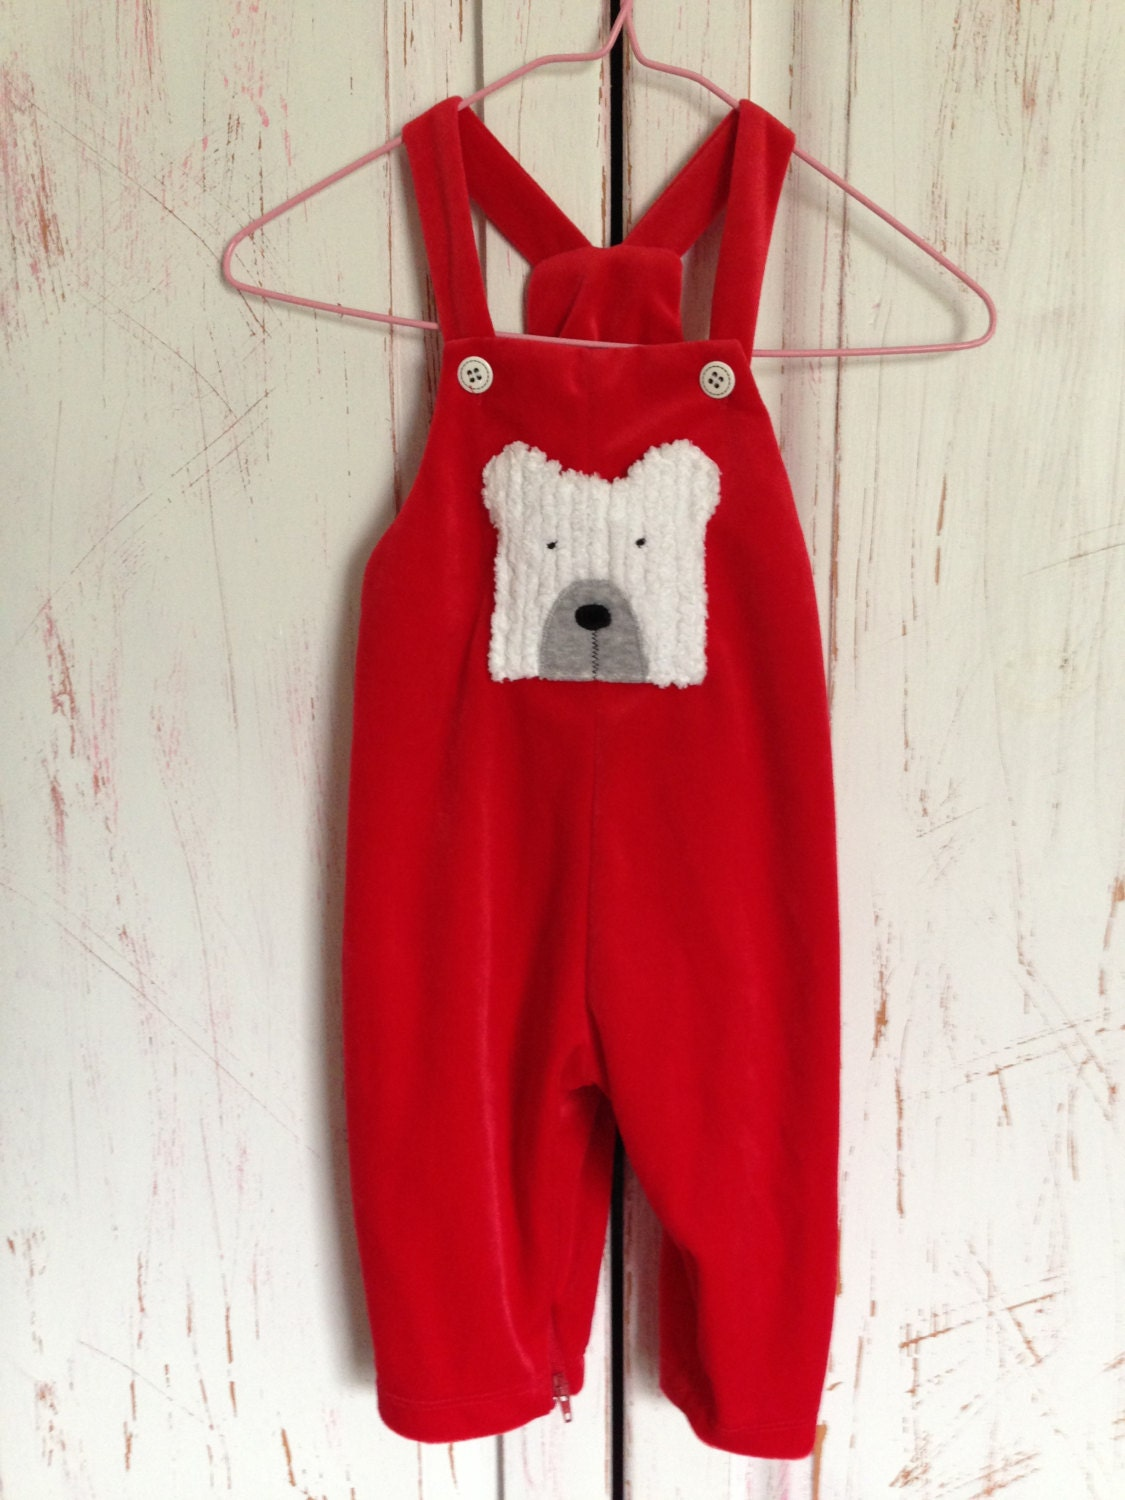 Vintage Red Velour Baby Overall By Sweet Potatoes 12 months - BlueLittleBirds